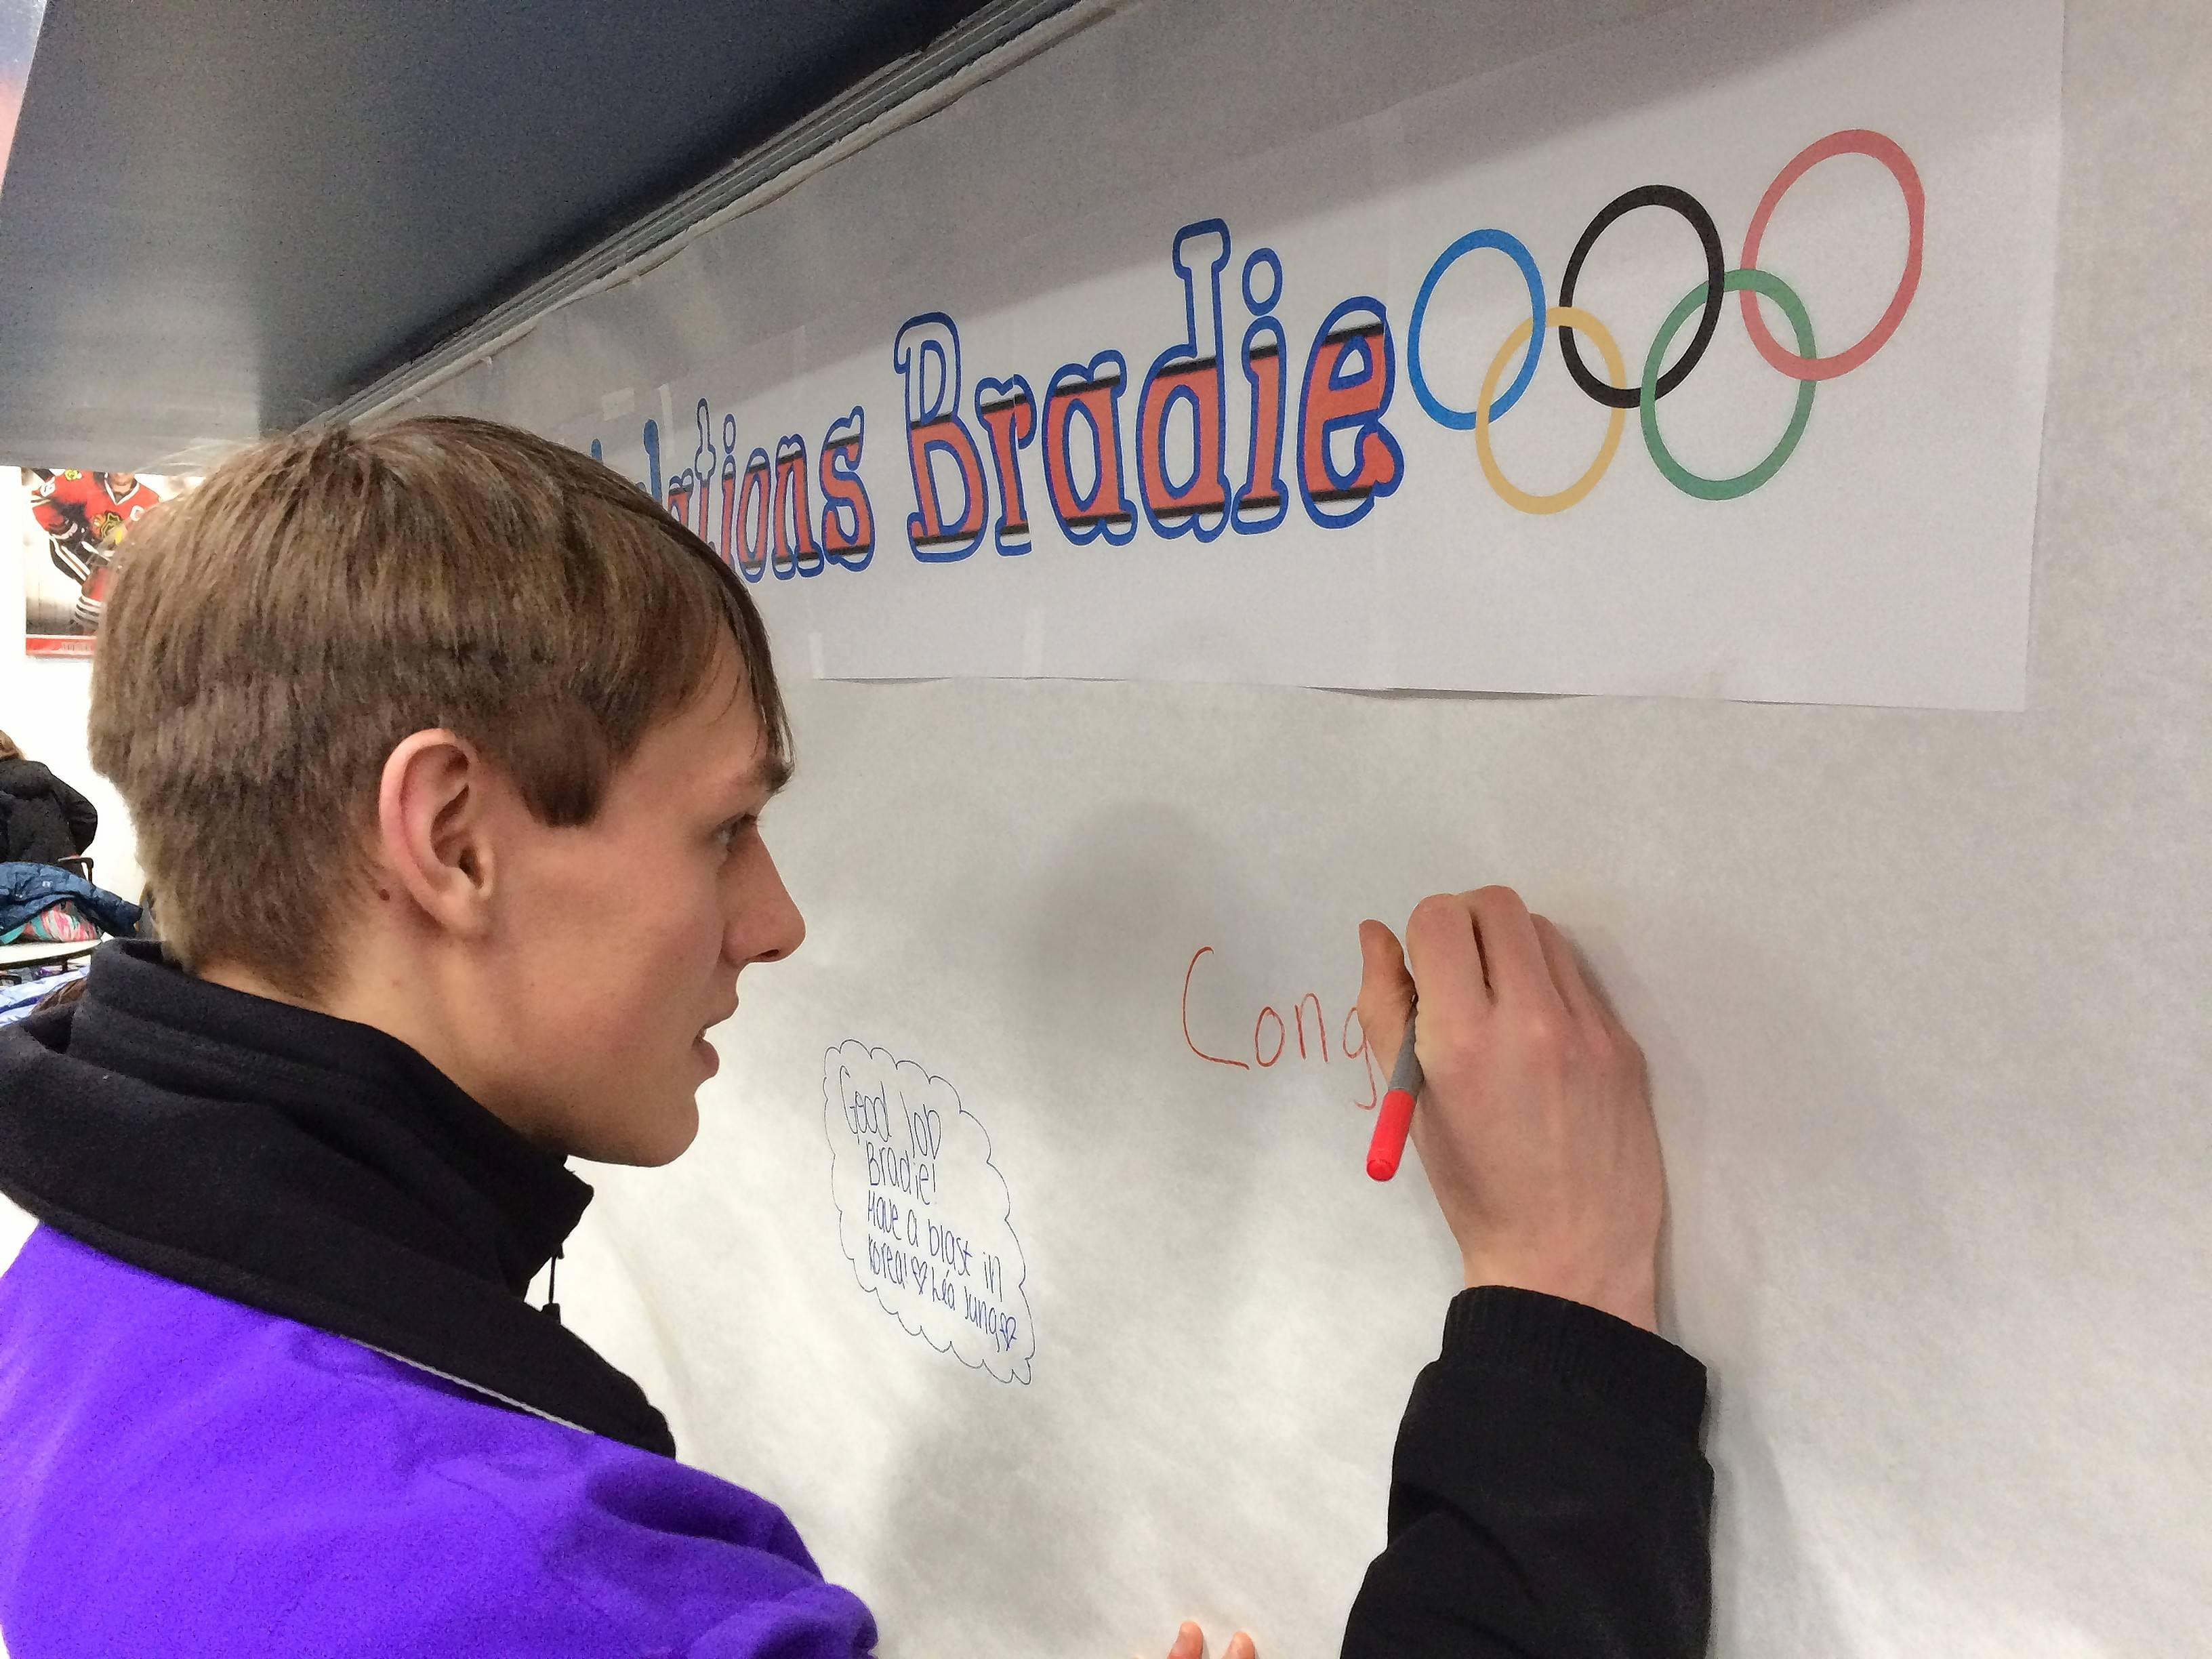 Derek Wagner, a coach at the Twin Rinks Ice Pavillion in Buffalo Grove, leaves a congratulatory note for newly named figure skating Olympian Bradie Tennell.